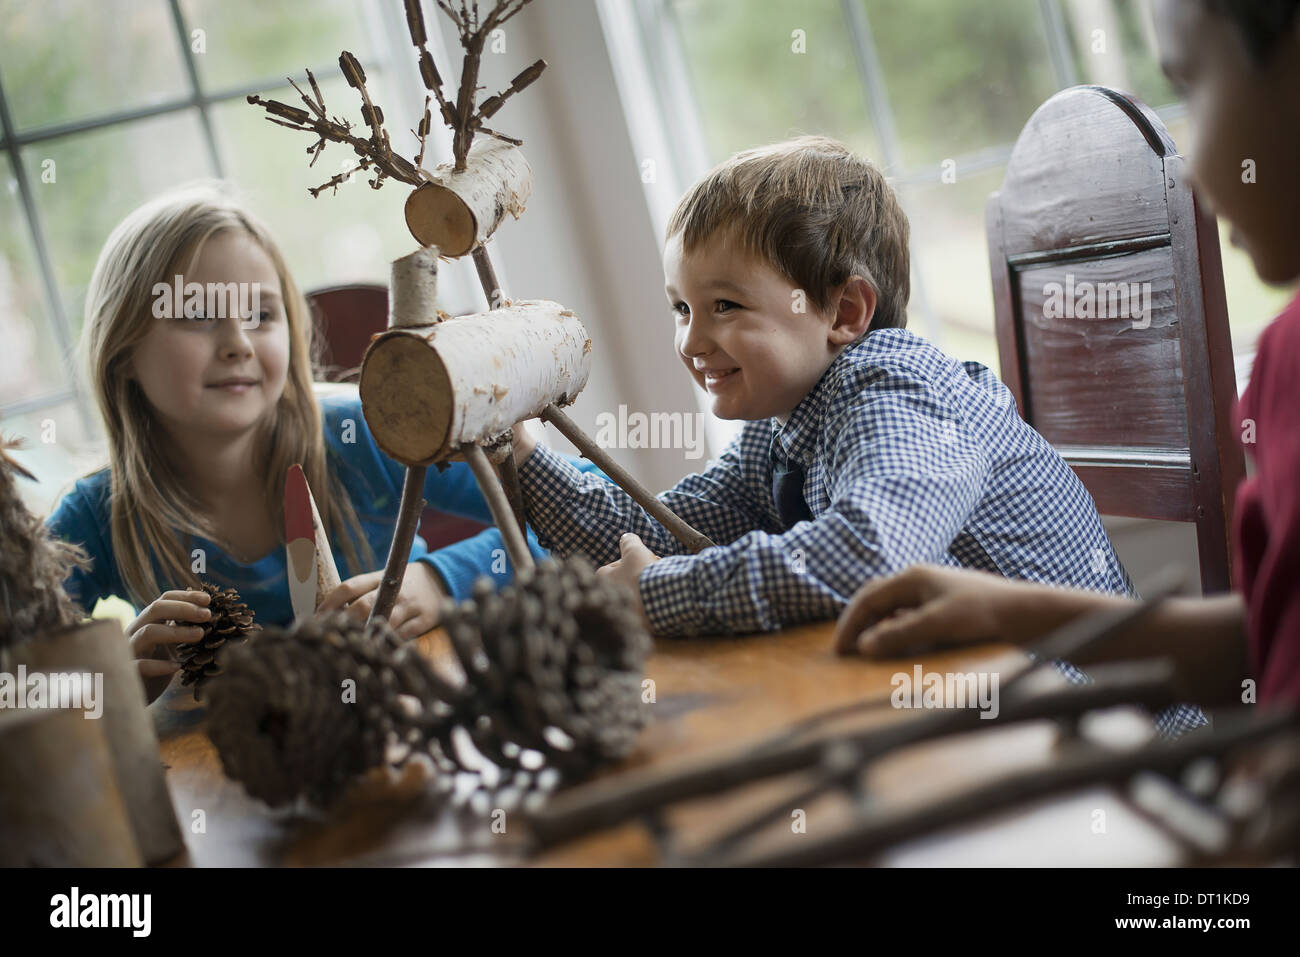 Three children sitting at a table in family home A twig reindeer in the centre with branches and twigs to make objects - Stock Image